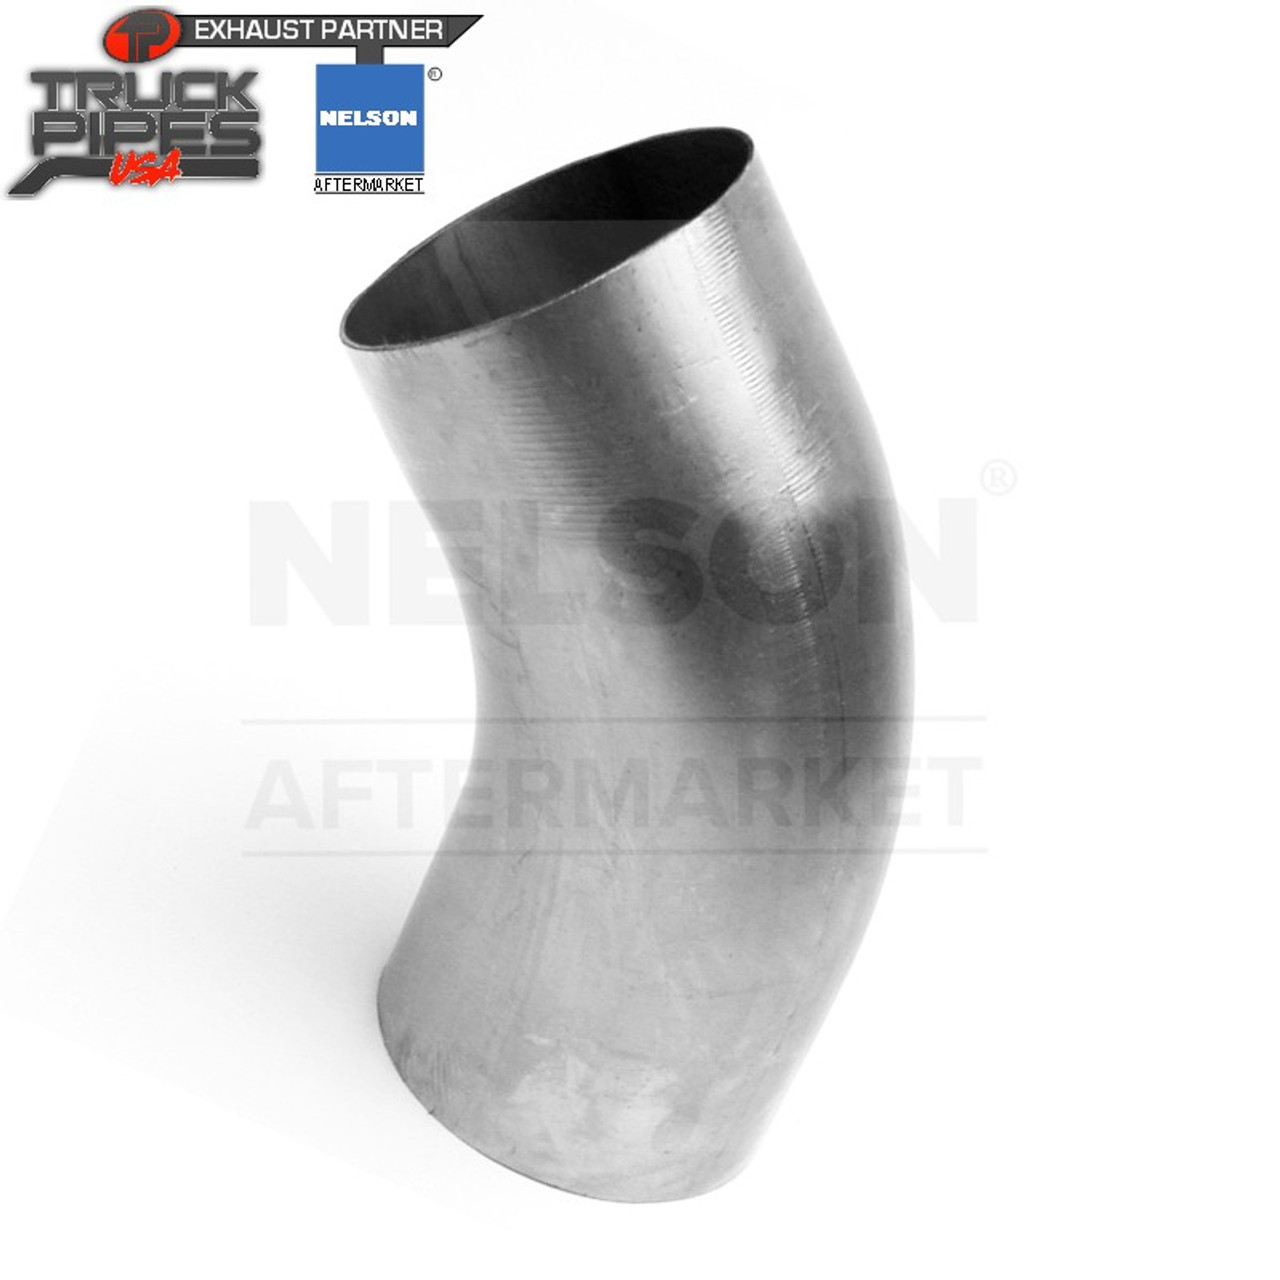 nelson global aftermarket exhaust products